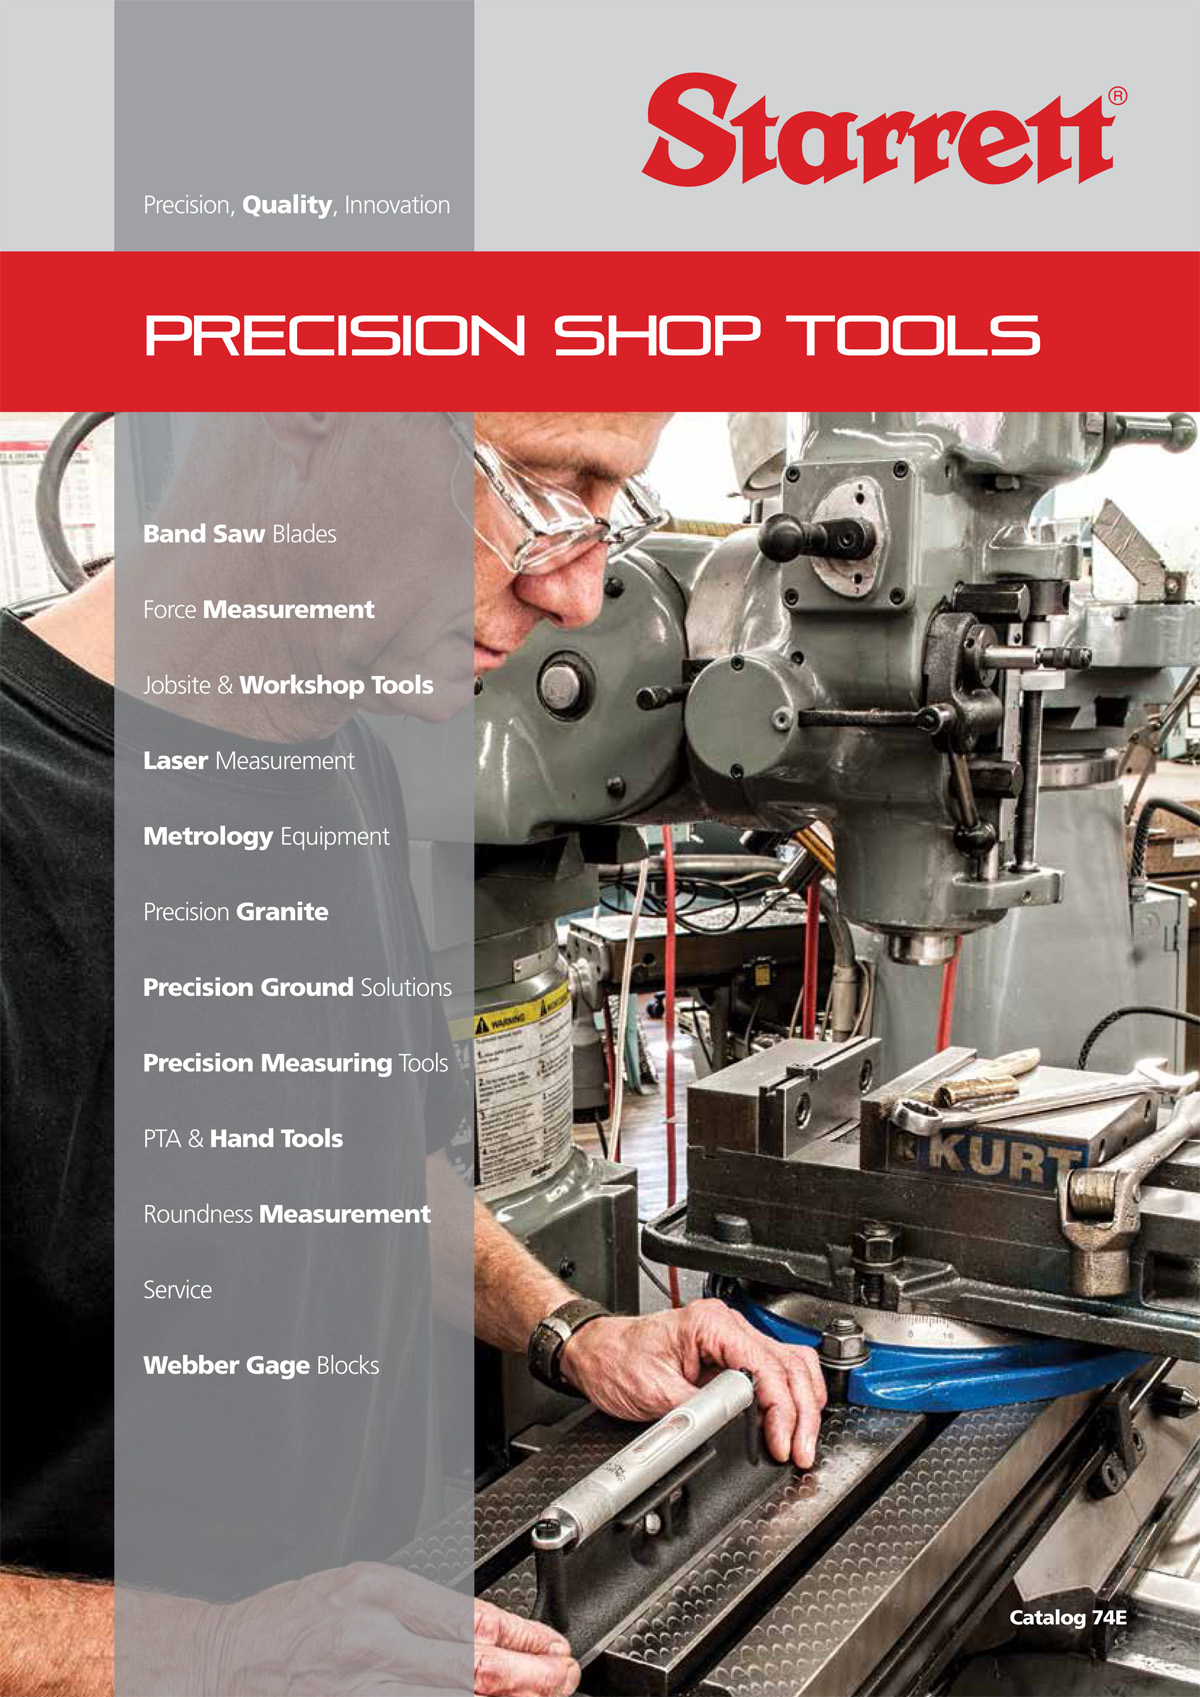 Starrett Precision Shop Tool Catalogue 7